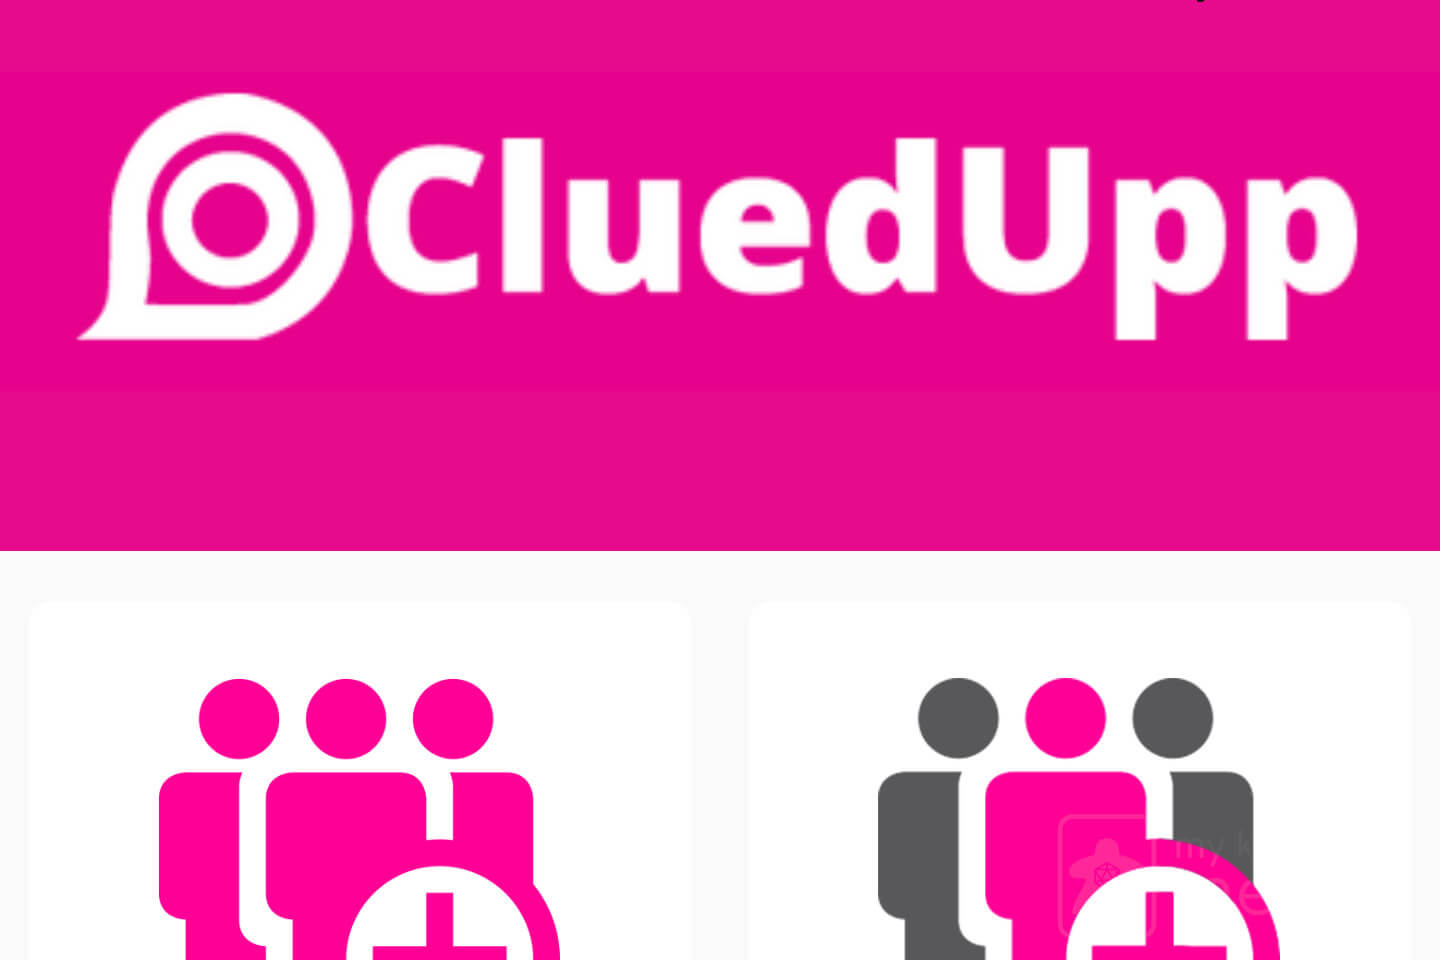 Cluedupp Review